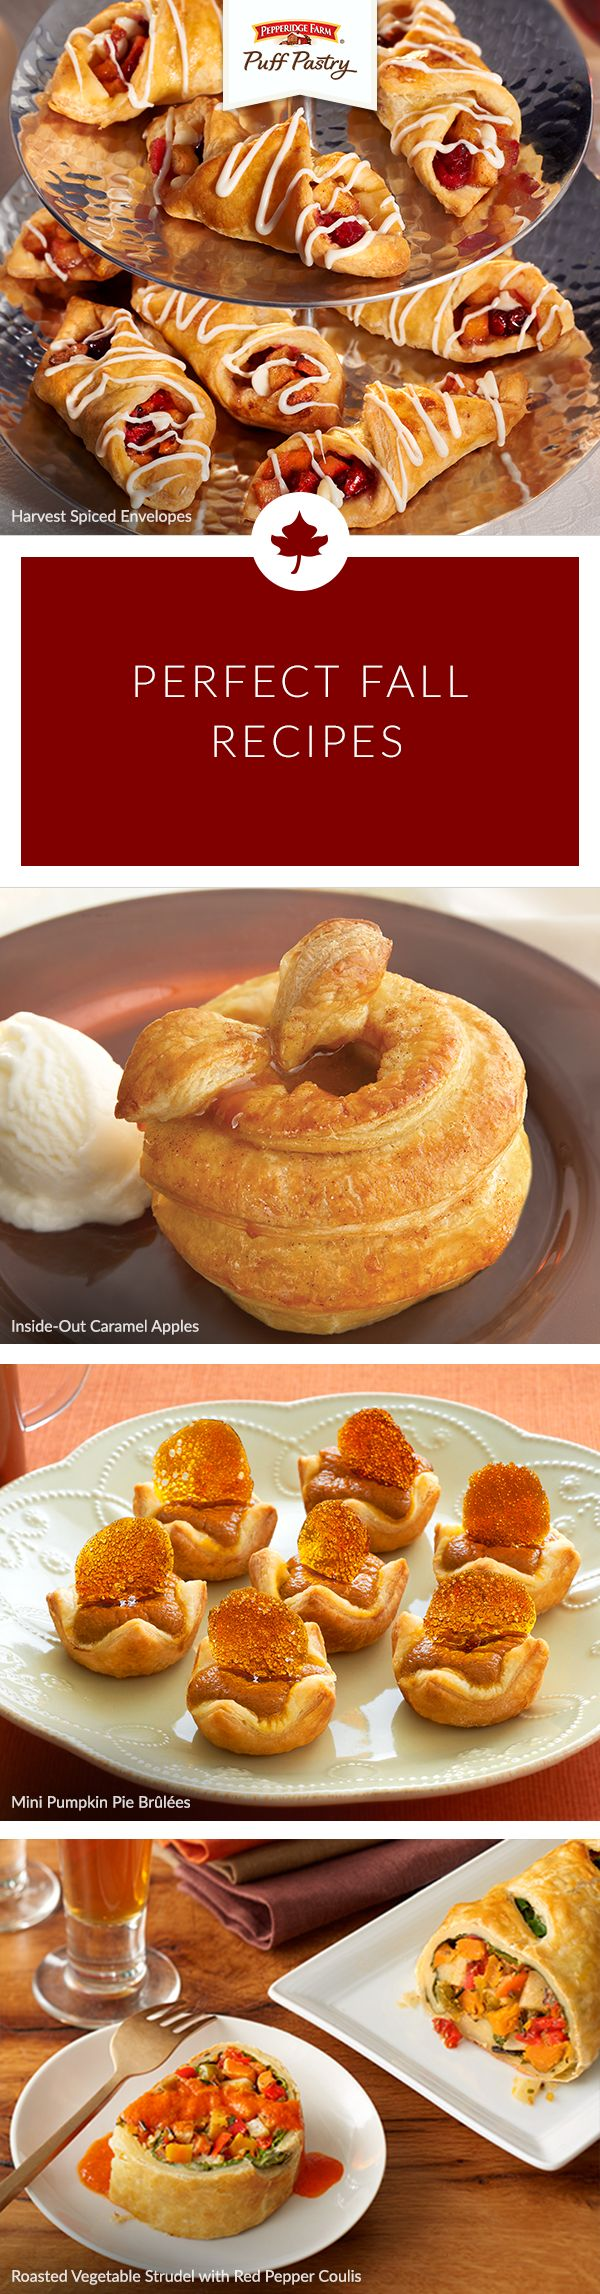 Bring all your favorite fall flavors to the table with this list of seasonal must-make Pepperidge Farm Puff Pastry recipes. Whether you're in love with apples, pumpkins, roasted vegetables, or nuts and spices, you'll find something magical to make here. Treat guests to delightful Inside-Out Caramel Apples, or give them a Mini Pumpkin Pie Brulee they can't resist. No matter the occasion, we have a fall recipe to make it great.